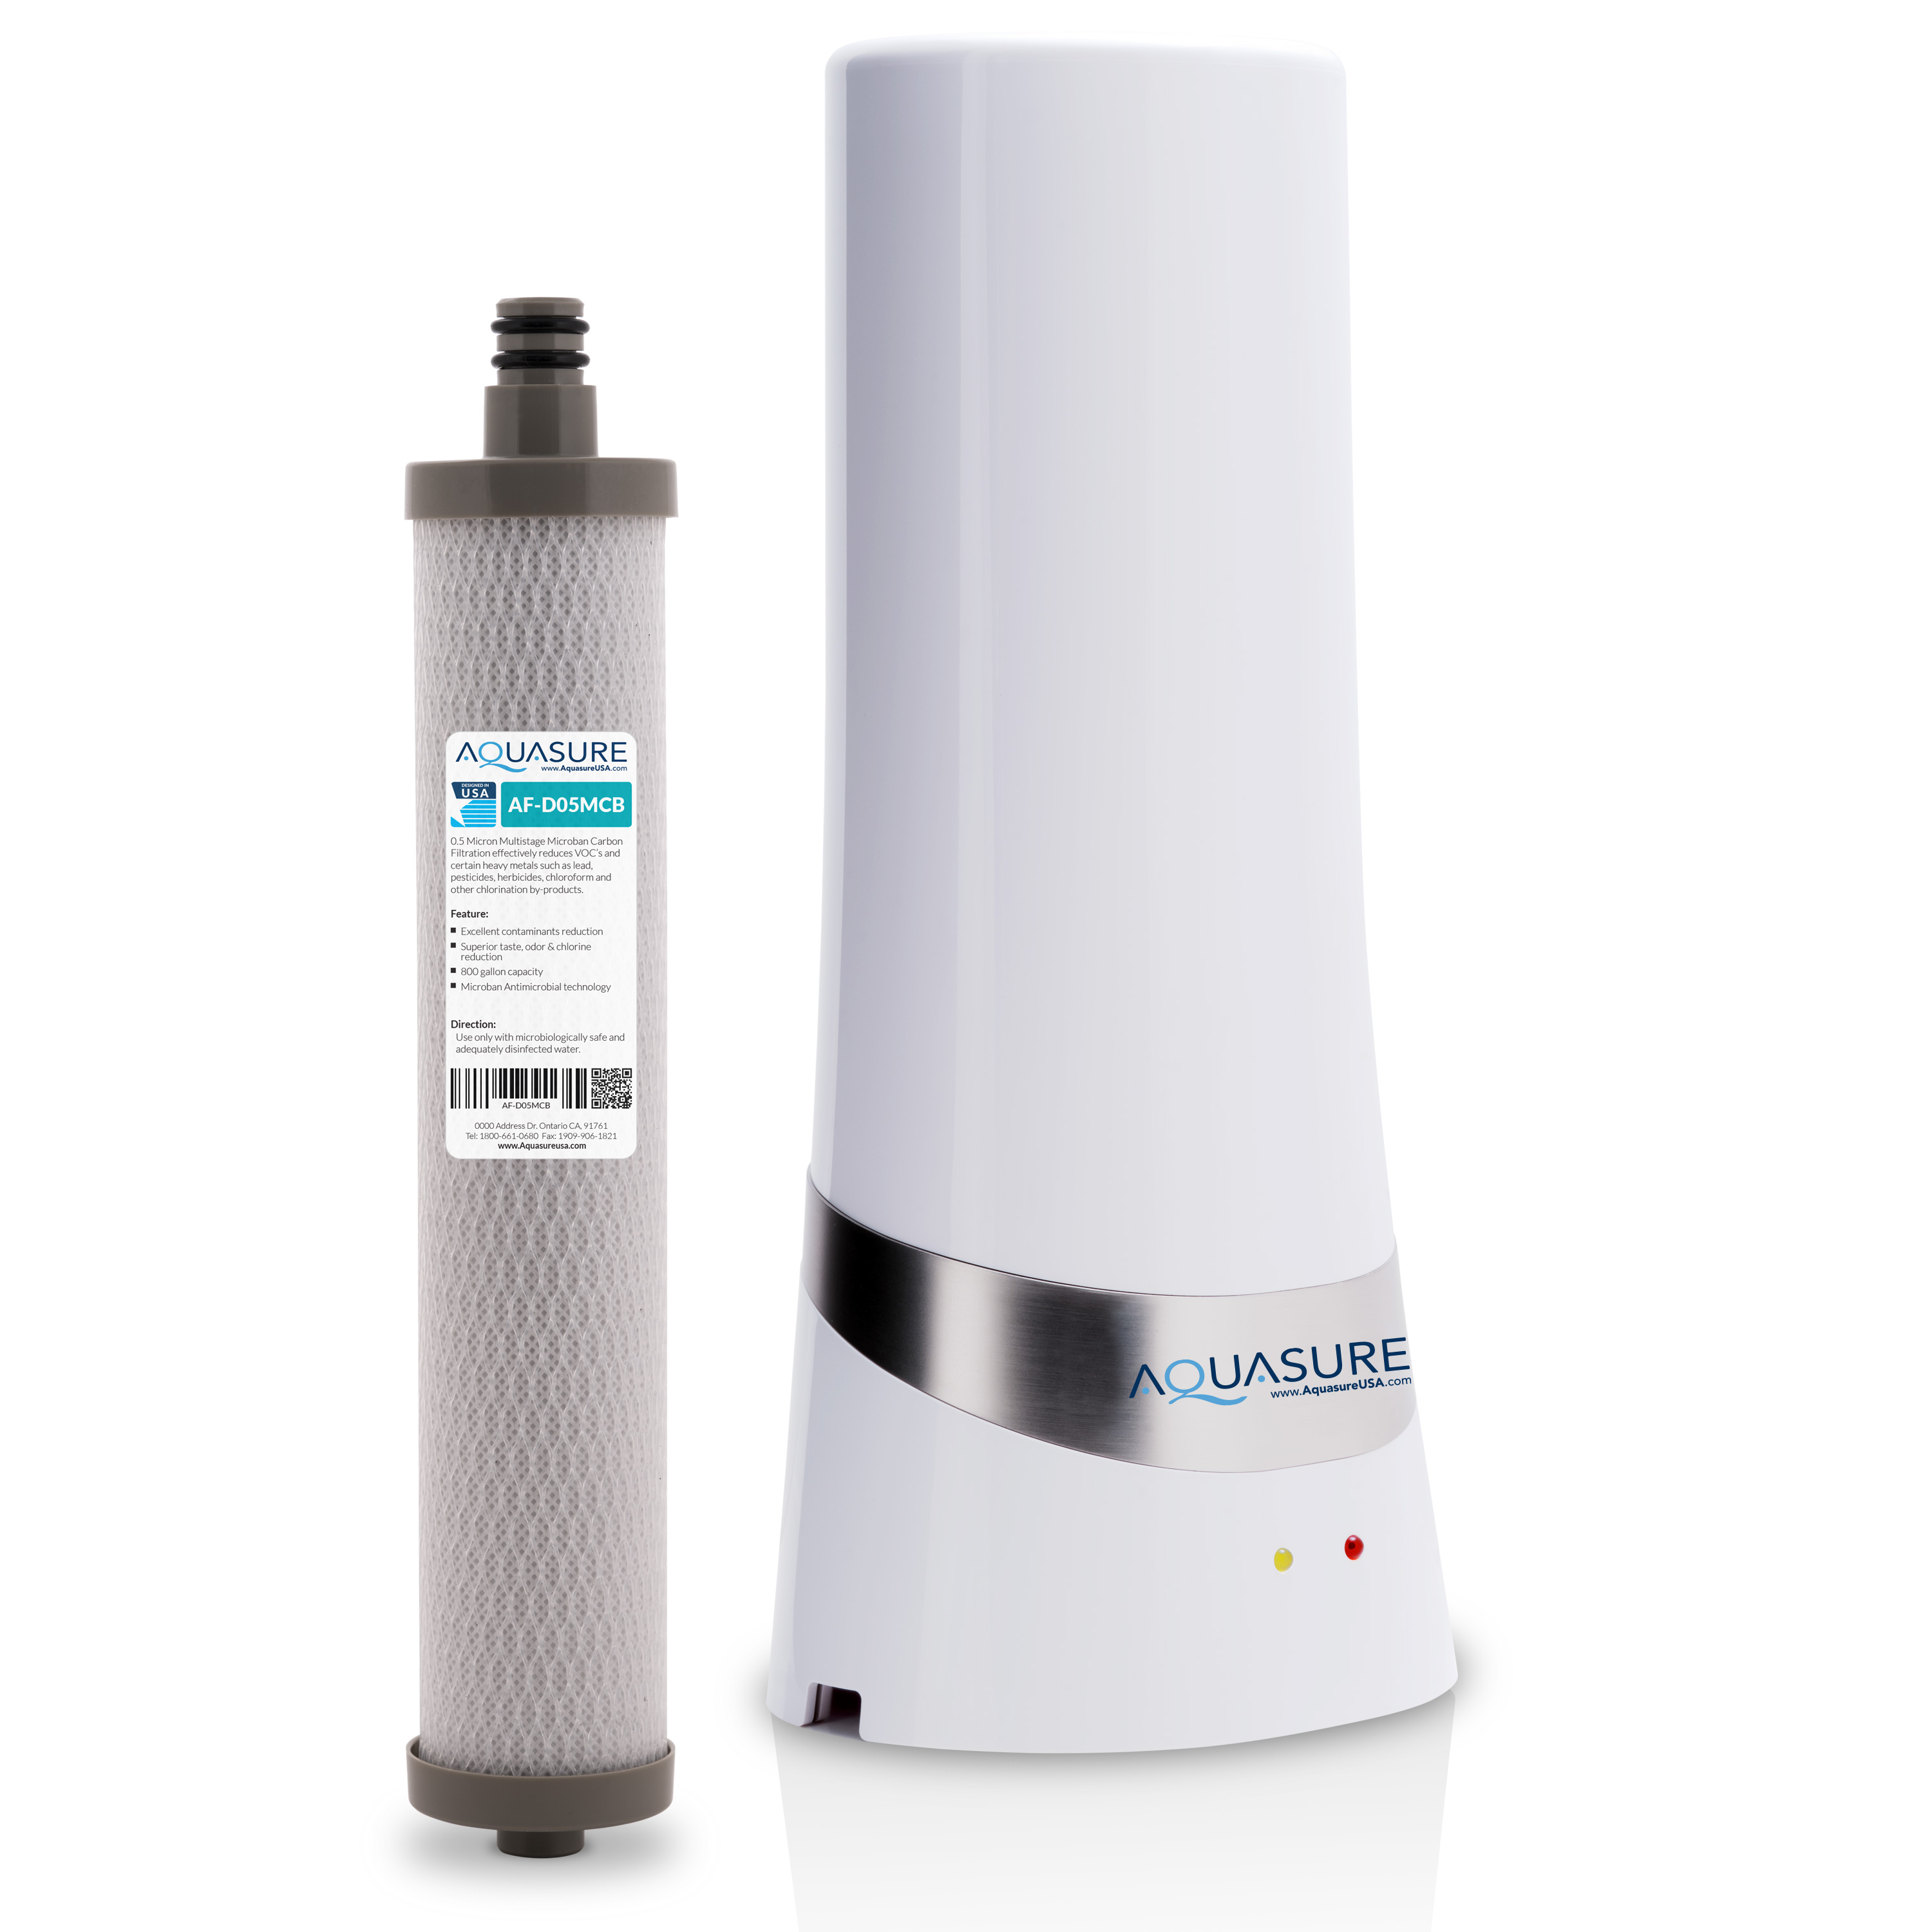 Carbon Water Filter System Aquasure Dash Series Countertop Drinking Water Filtration System With 5 Micron Carbon Block With Microban Technology